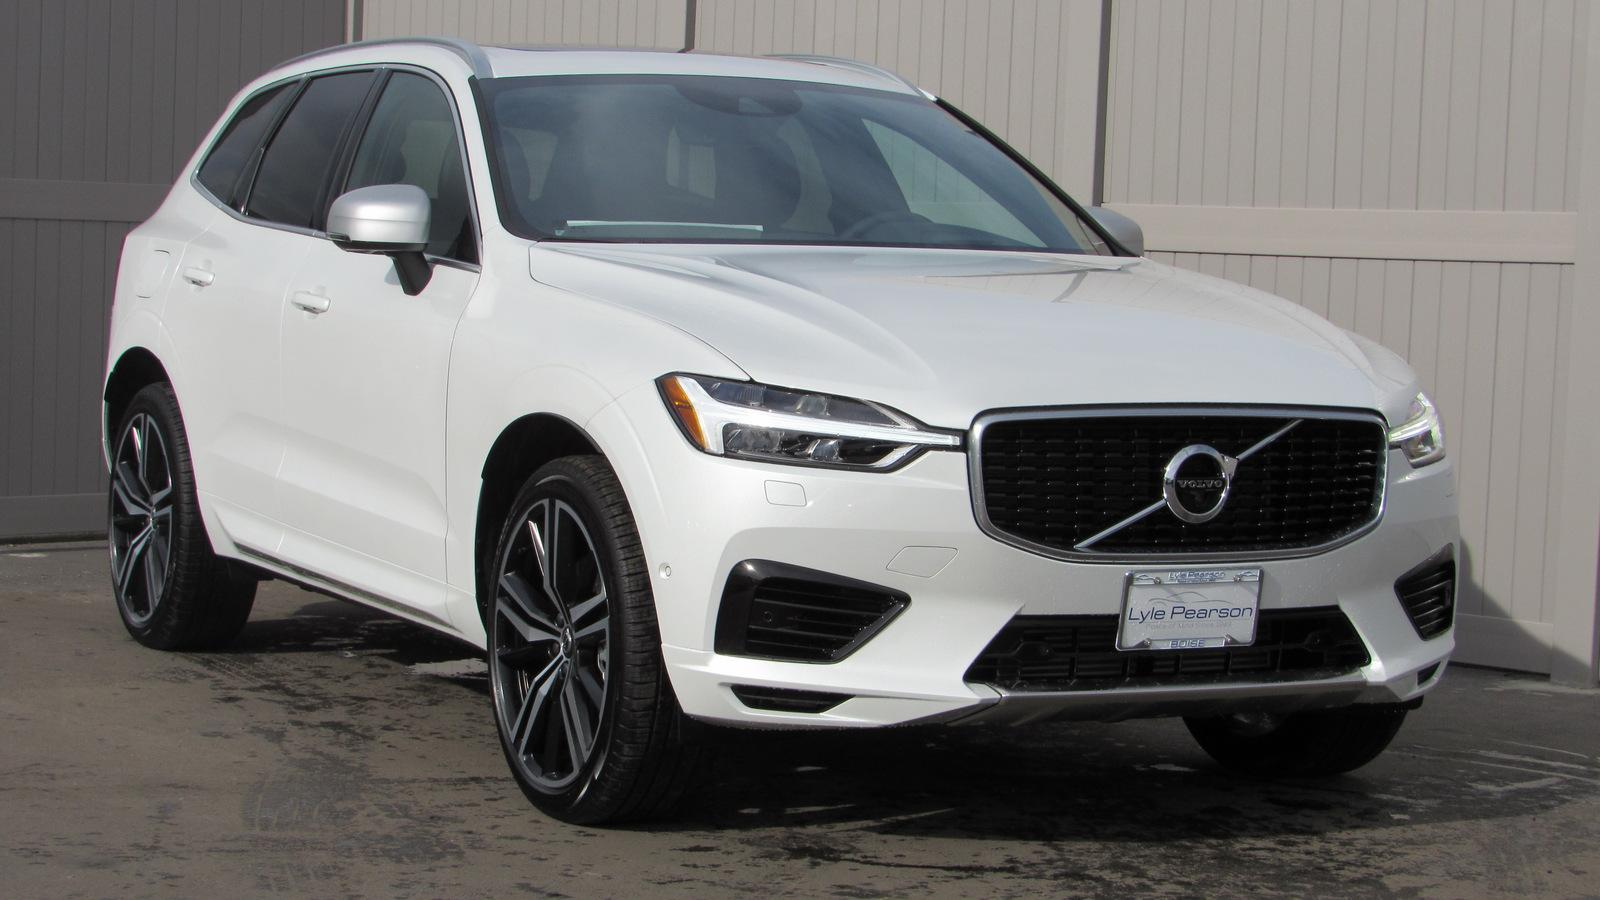 New 2019 Volvo XC60 T8 eAWD Plug-In Hybrid R-Design